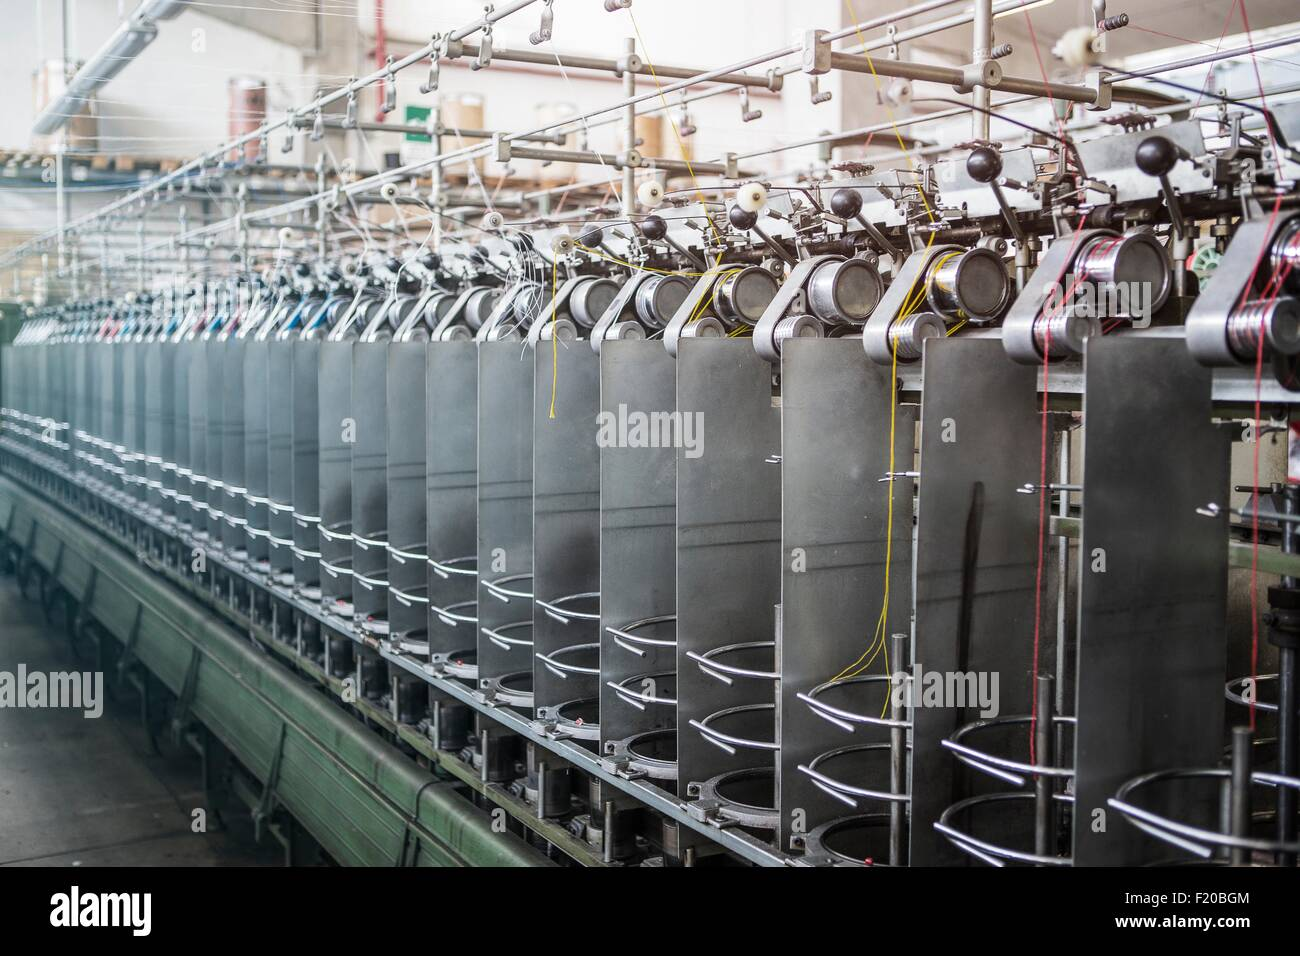 Machines making rope in factory that produces products for boating and camping - Stock Image